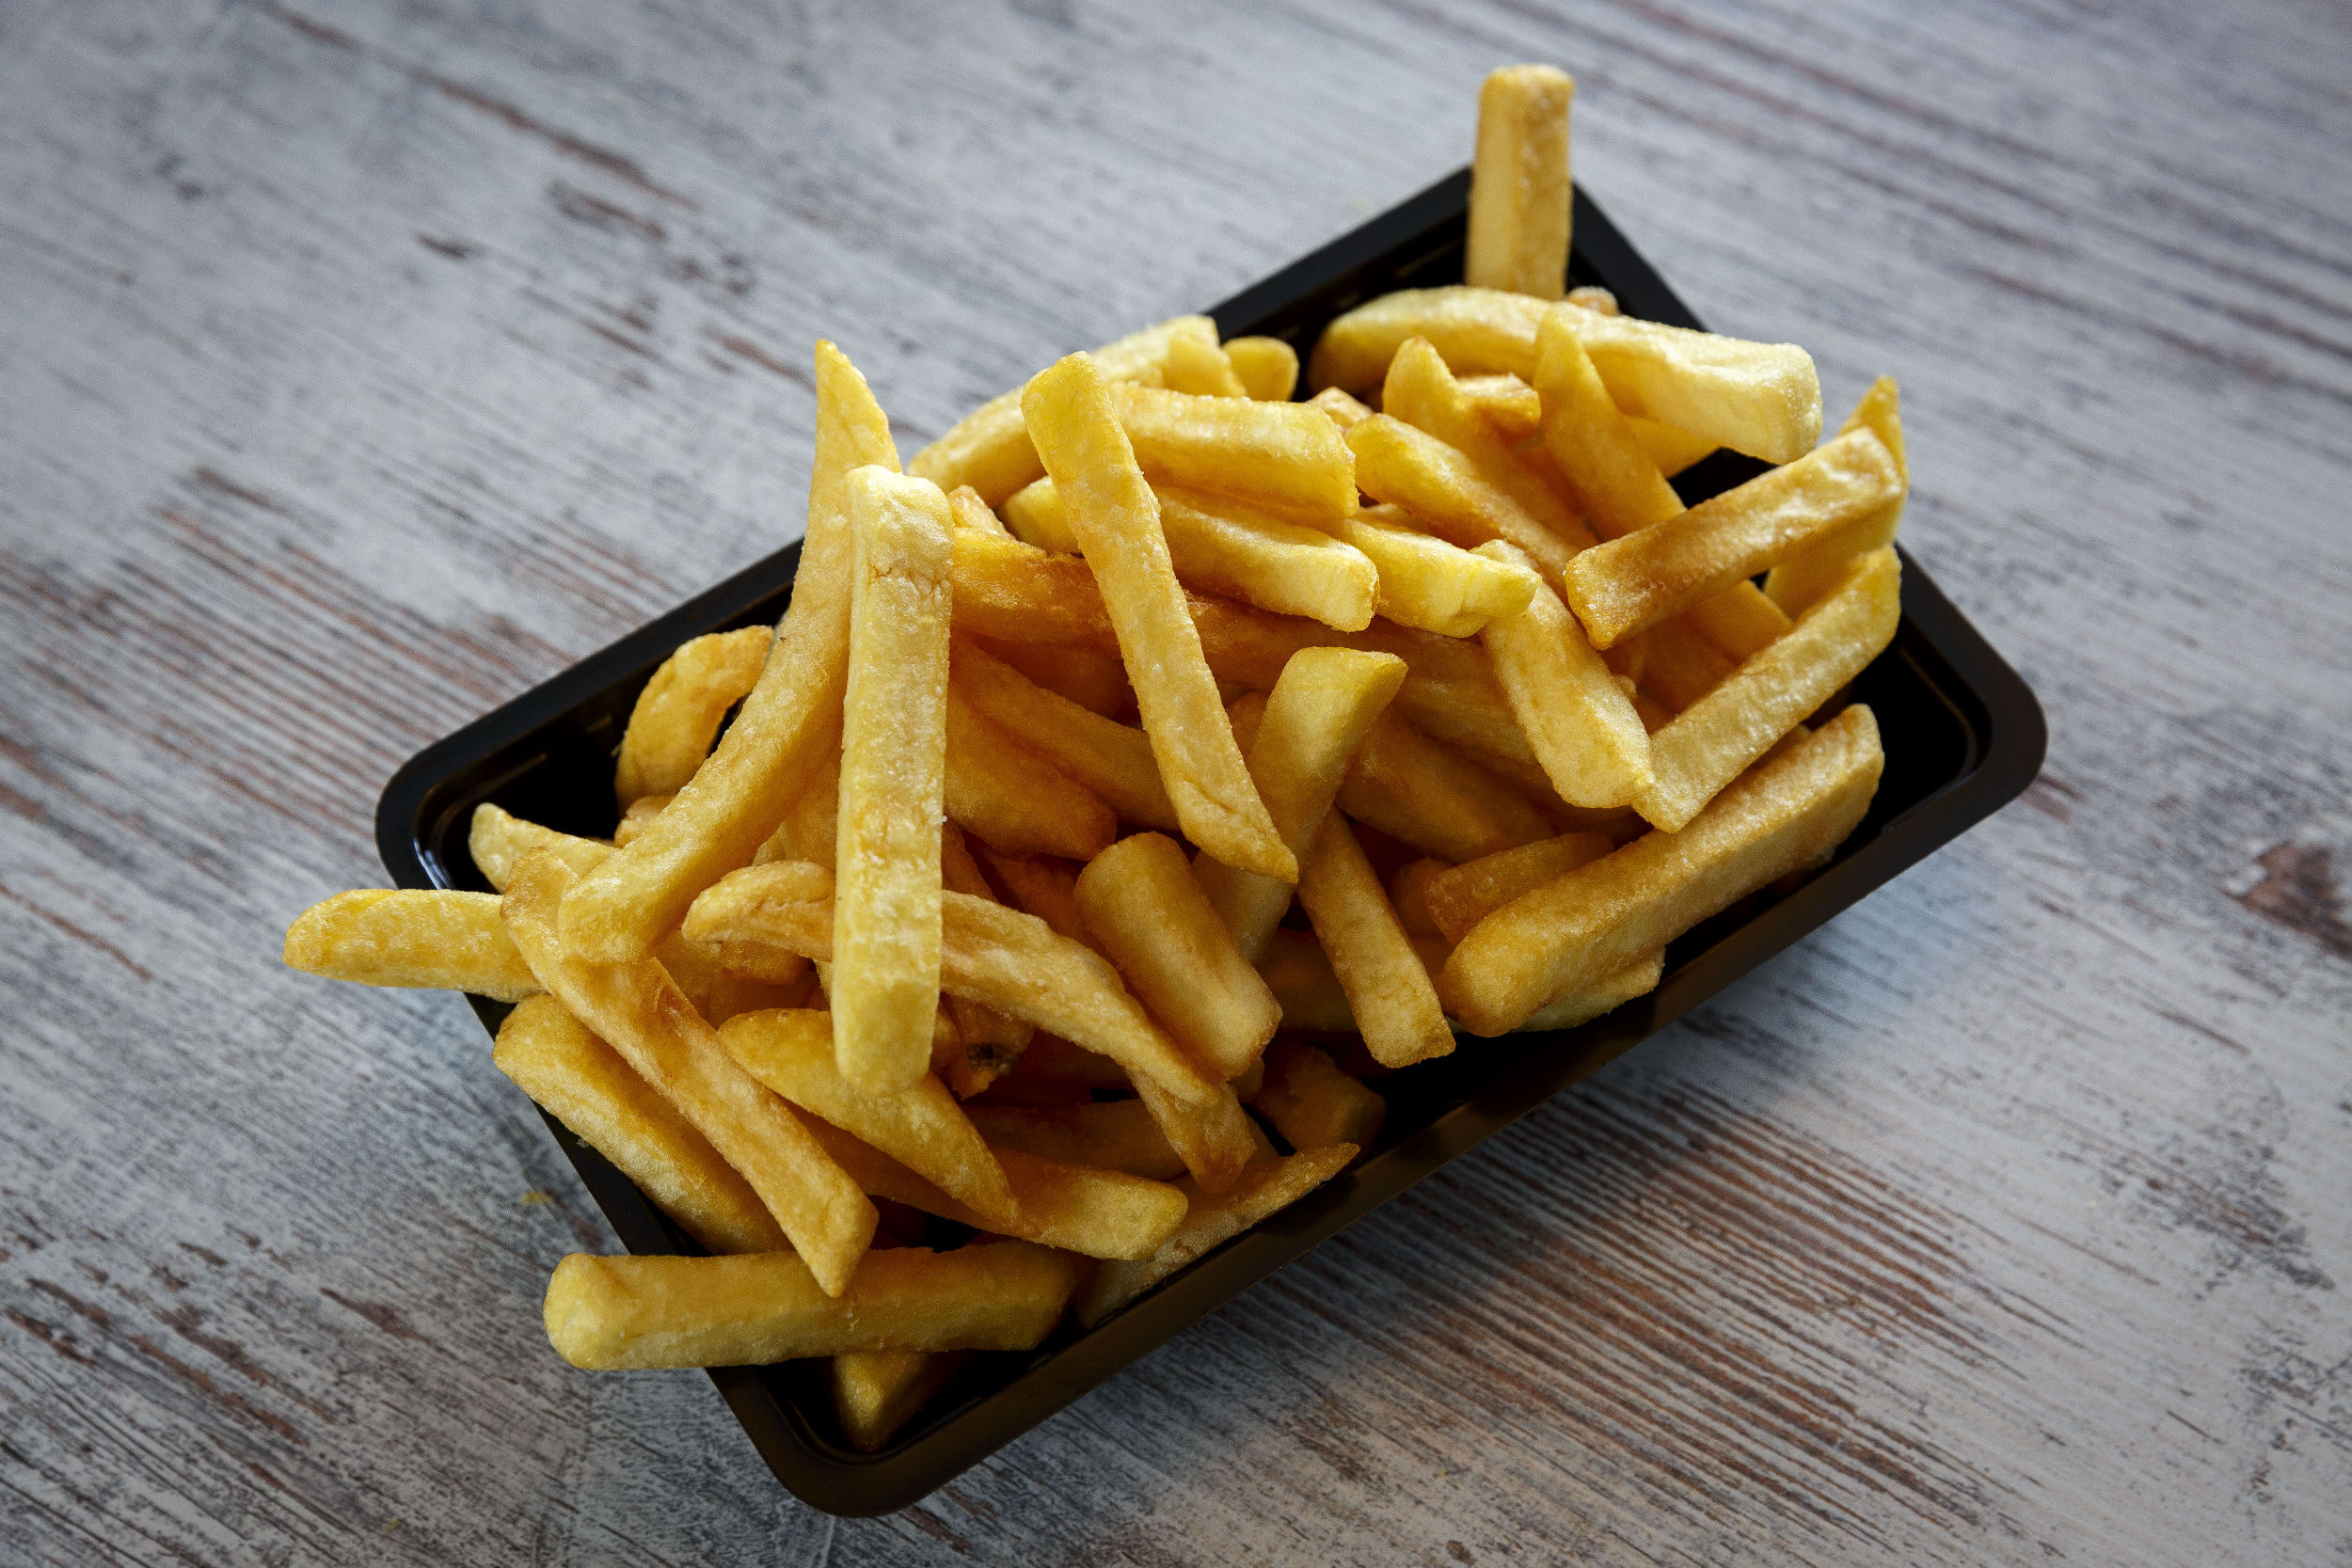 patat fries fastfood frituur ongezond